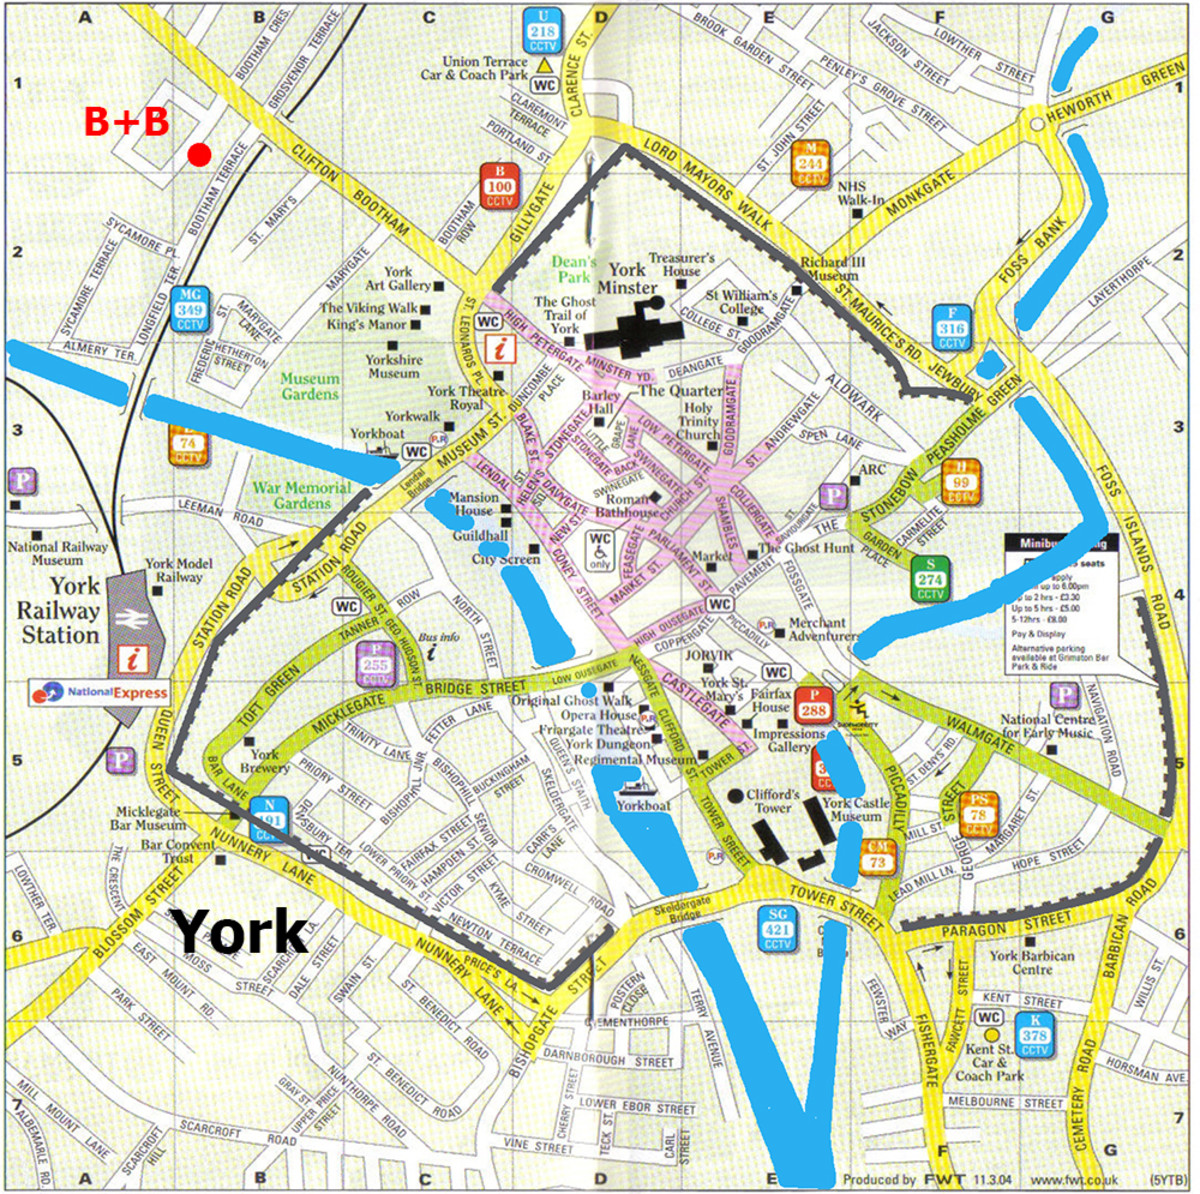 City of York, Yorkshire (where else?) England. Take a tour around the walls to  get your bearings, see a side of the city many have enjoyed. Walking them is not advised around dusk and the stairs are locked at times advertised at each point of access